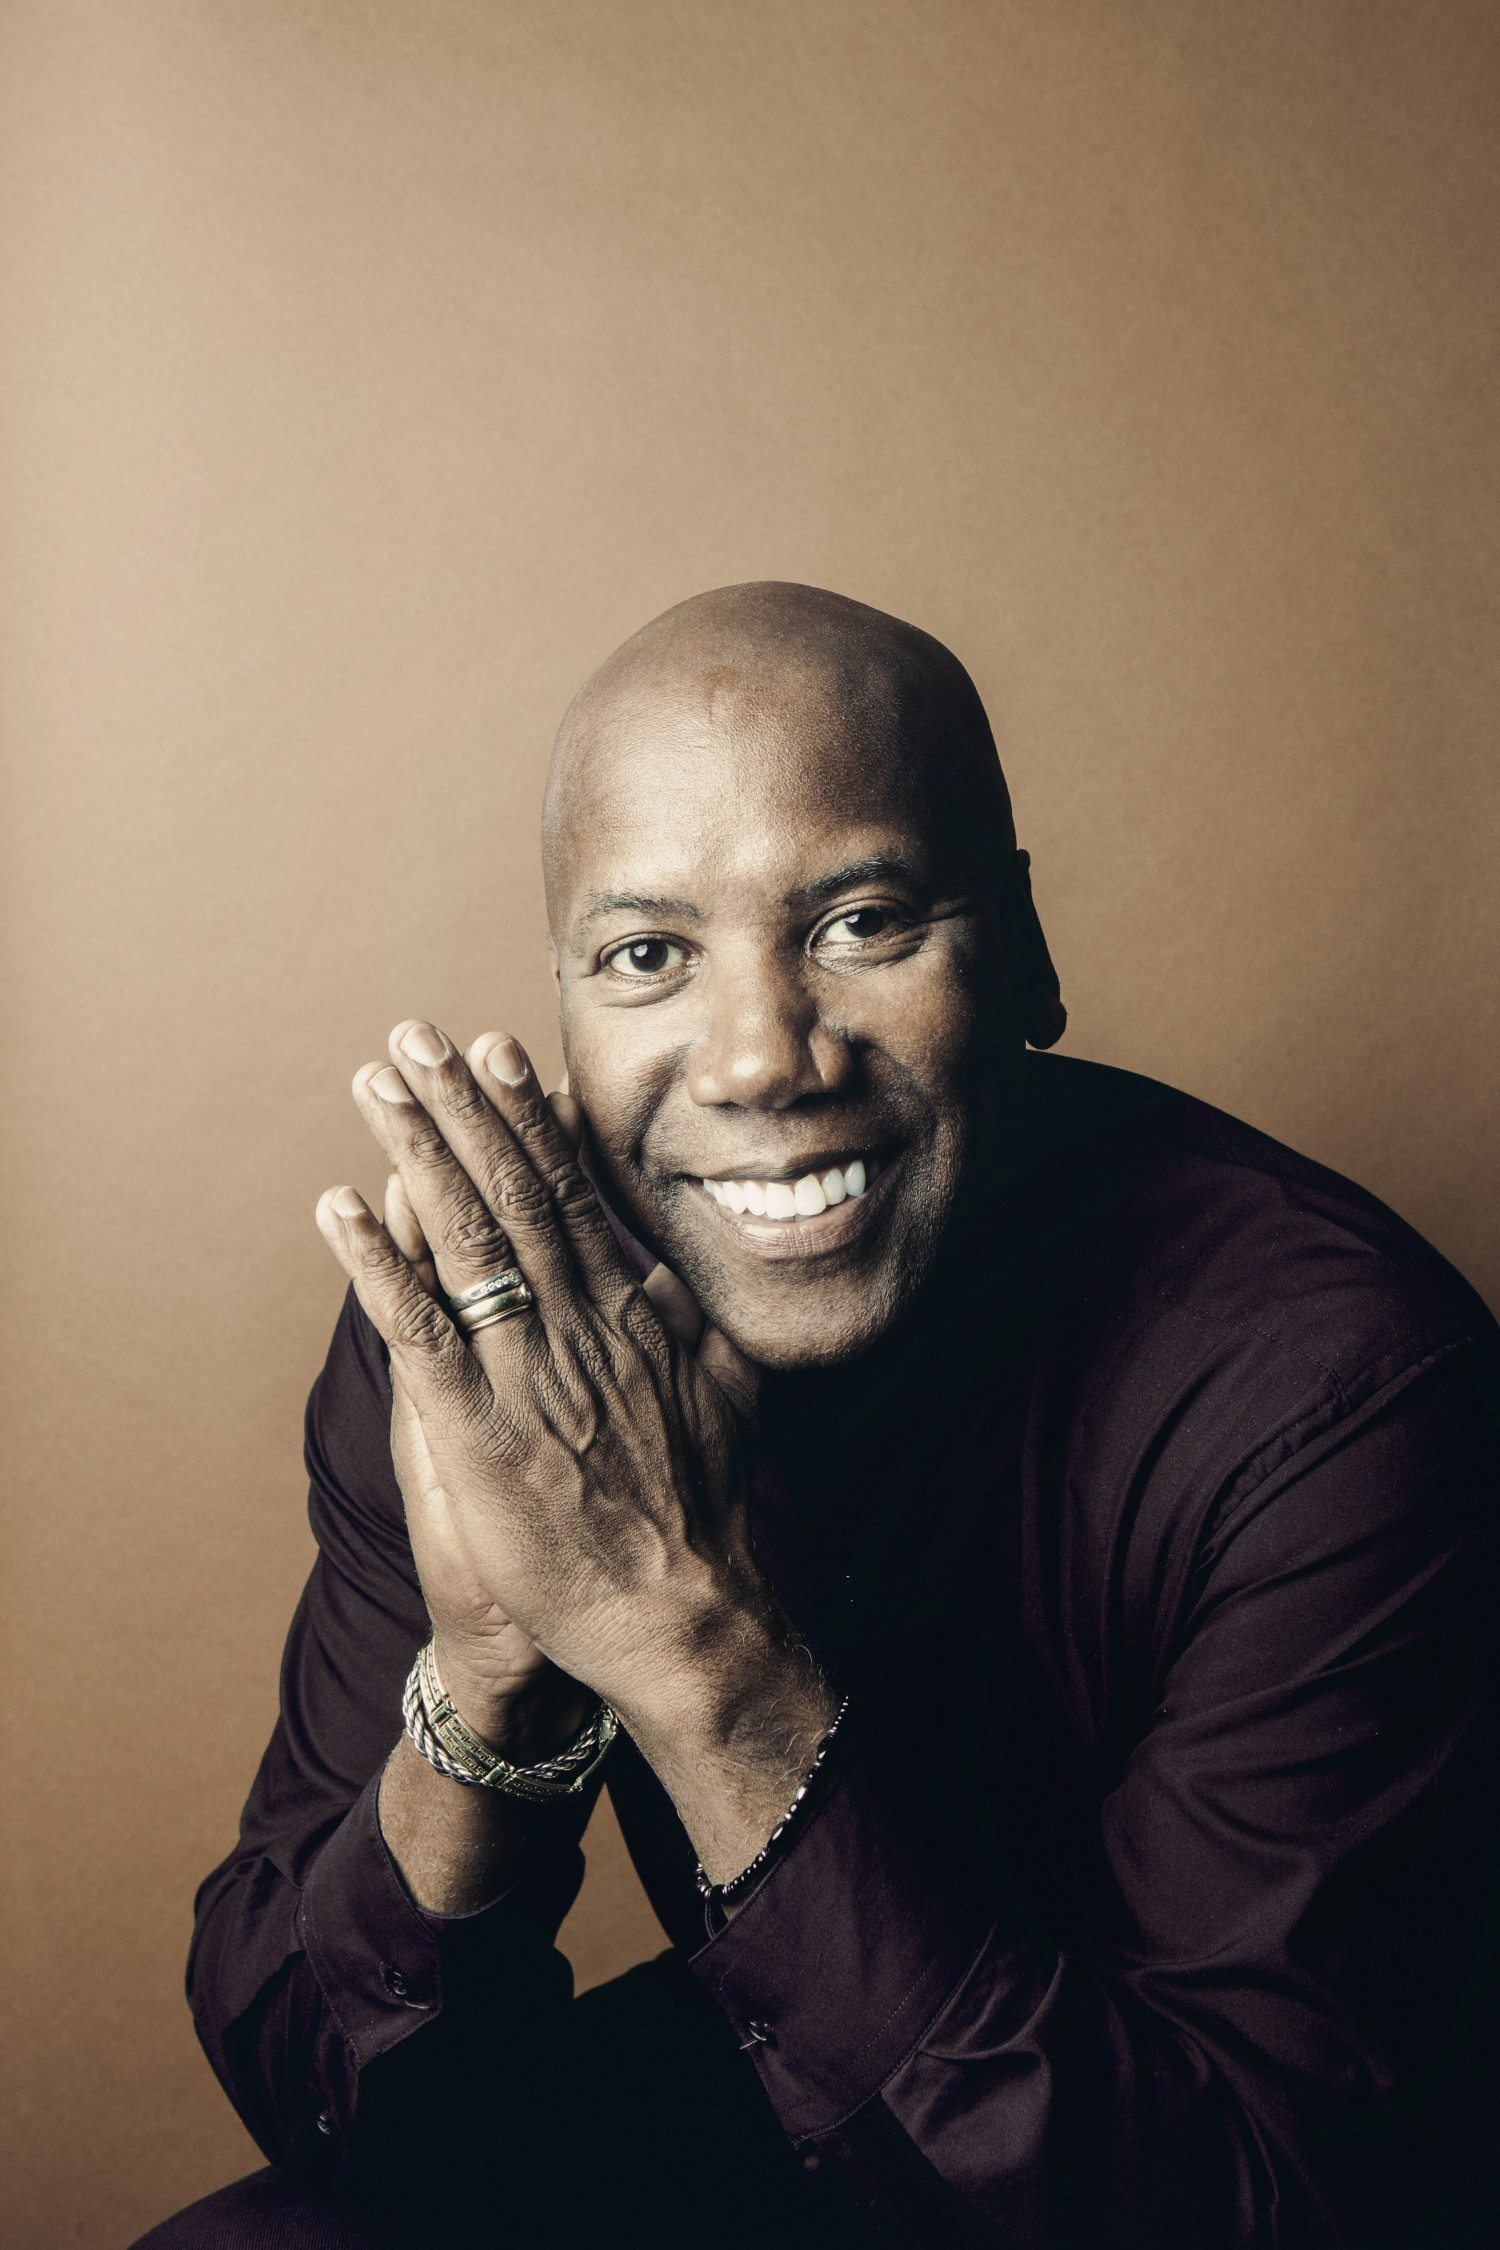 Nathan East / Photo: Alysse Gafkjen